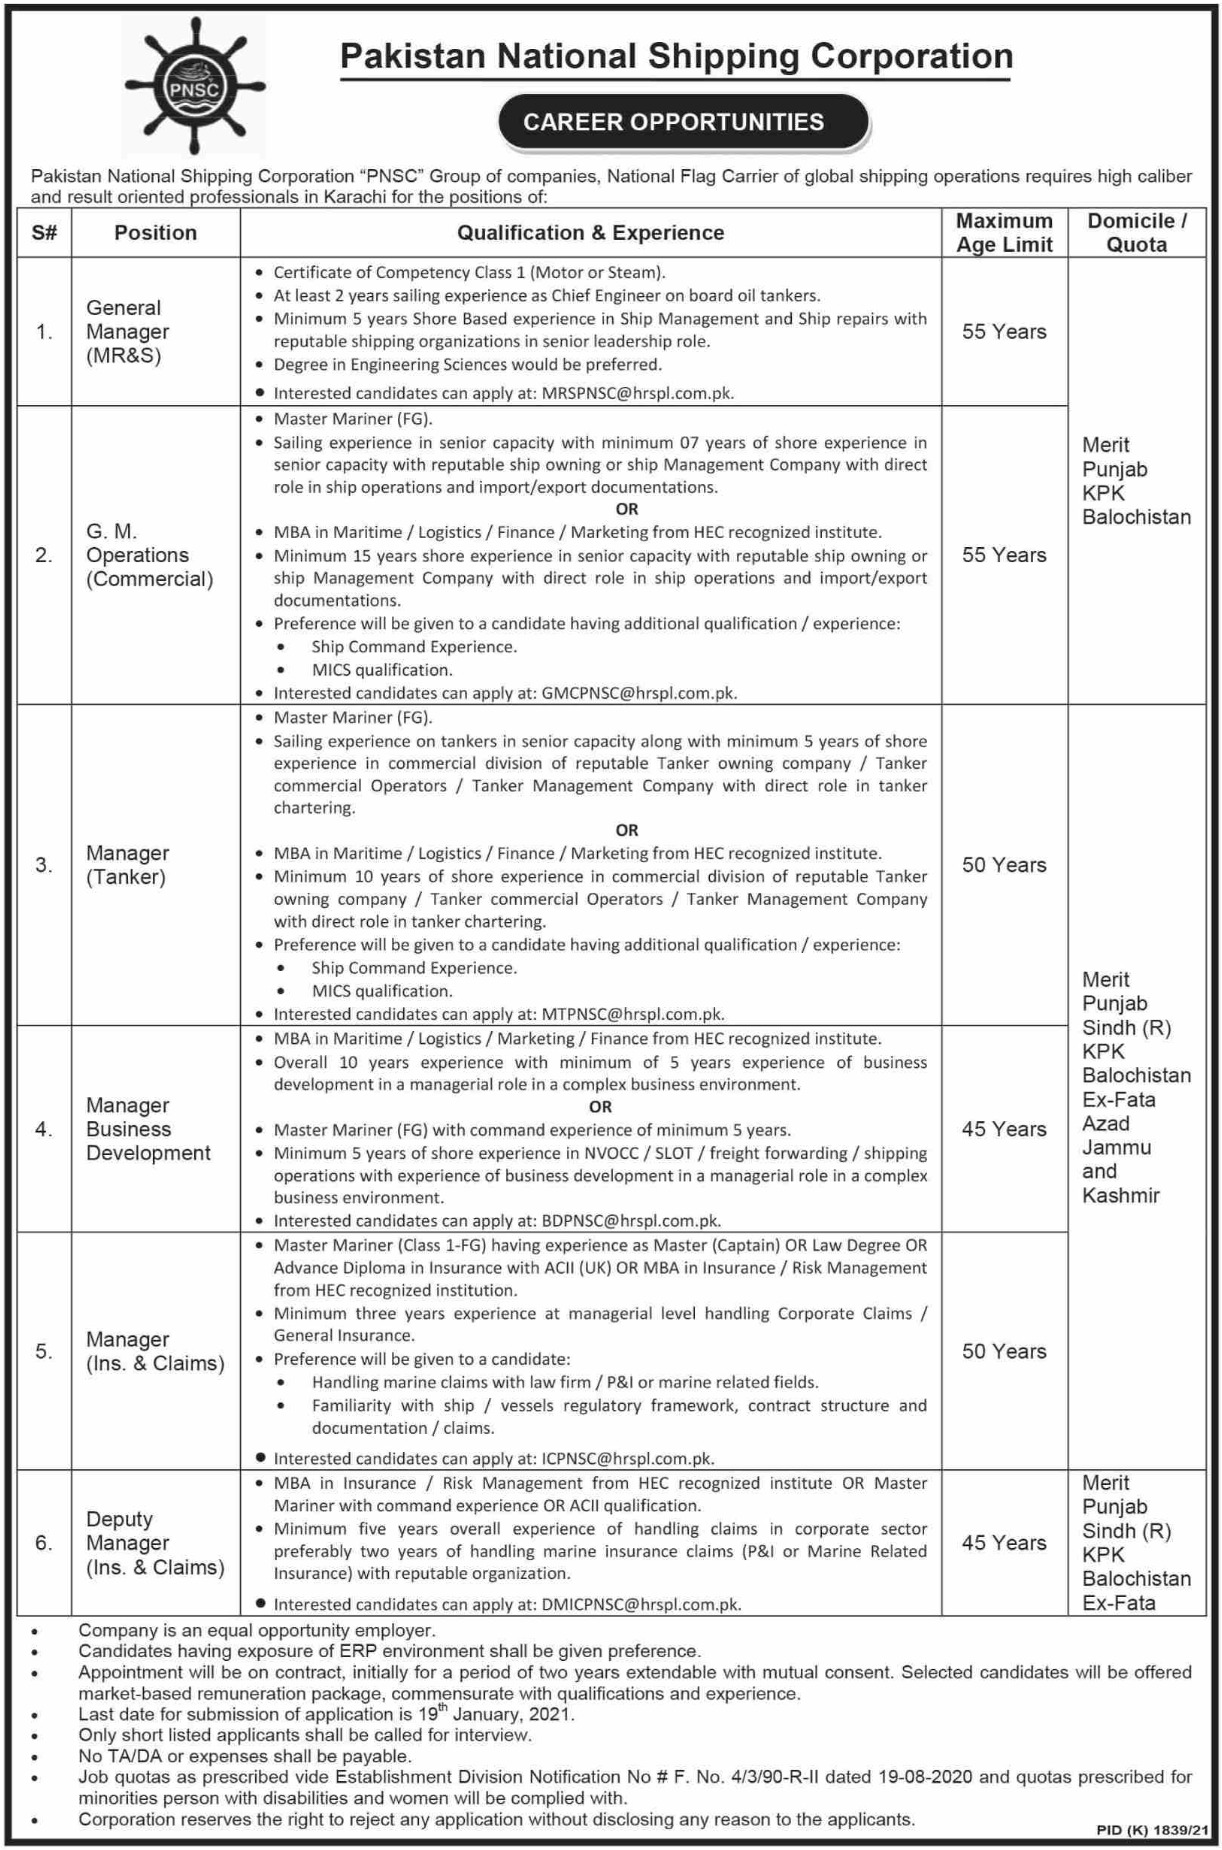 Pakistan National Shipping Corporation PNSC Jobs January 2021